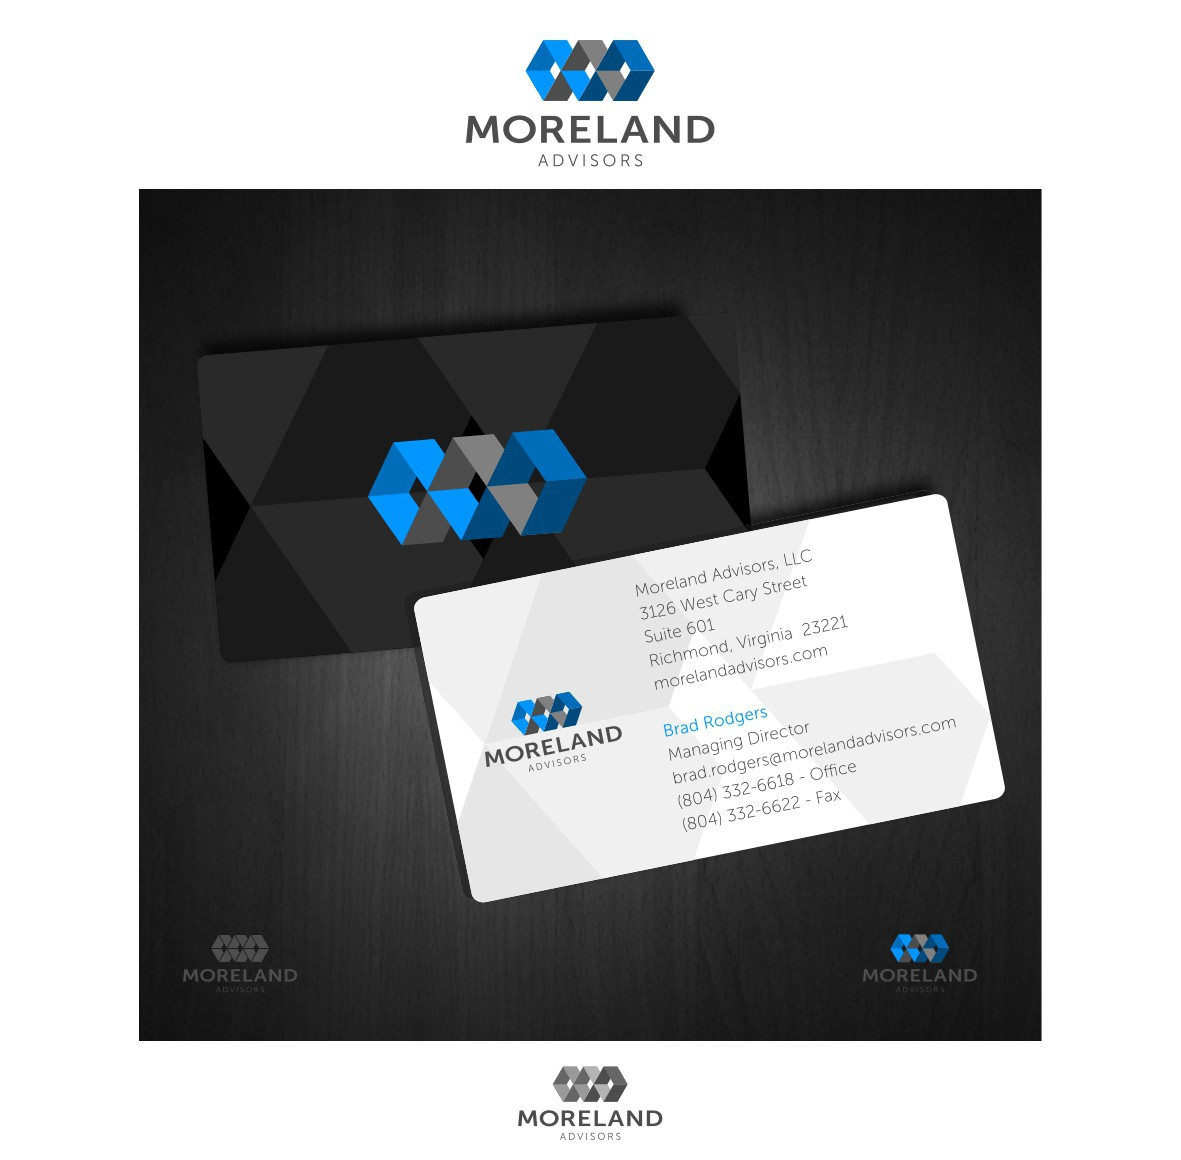 Help Moreland Advisors with a new logo and business card